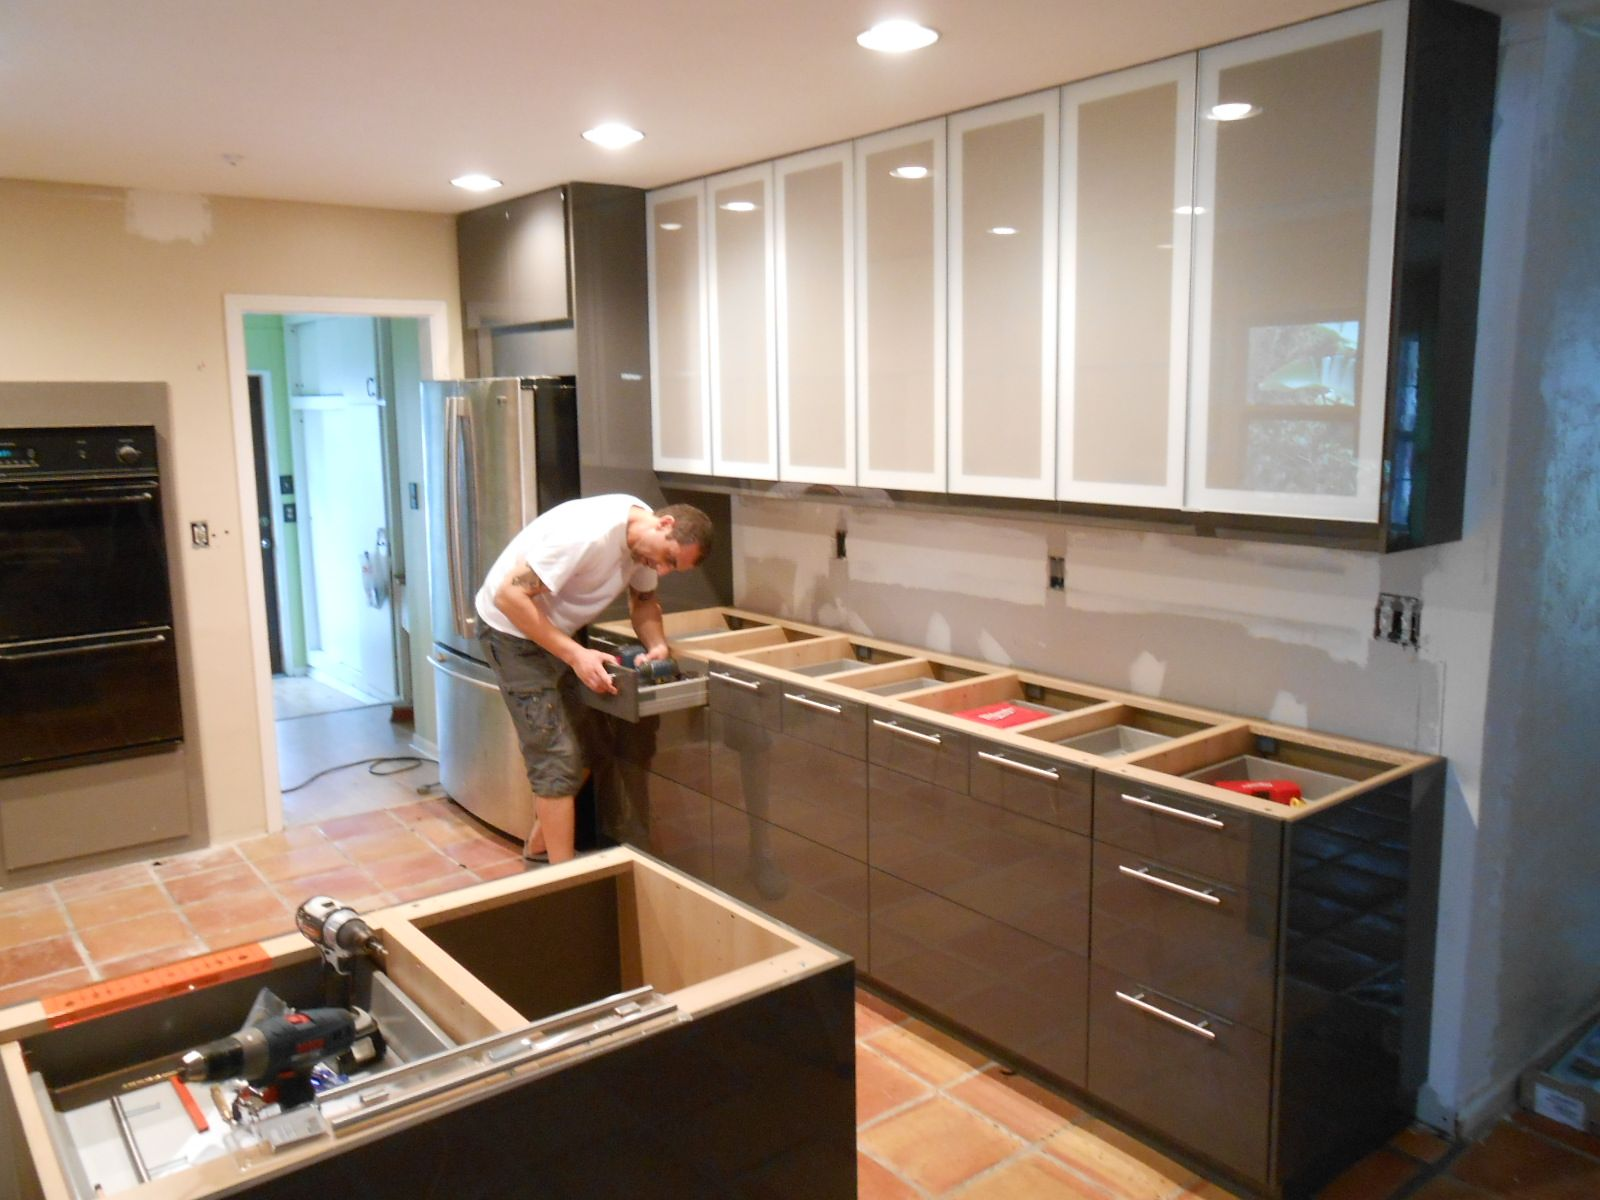 Build different types of cabinets in the kitchen for keeping the